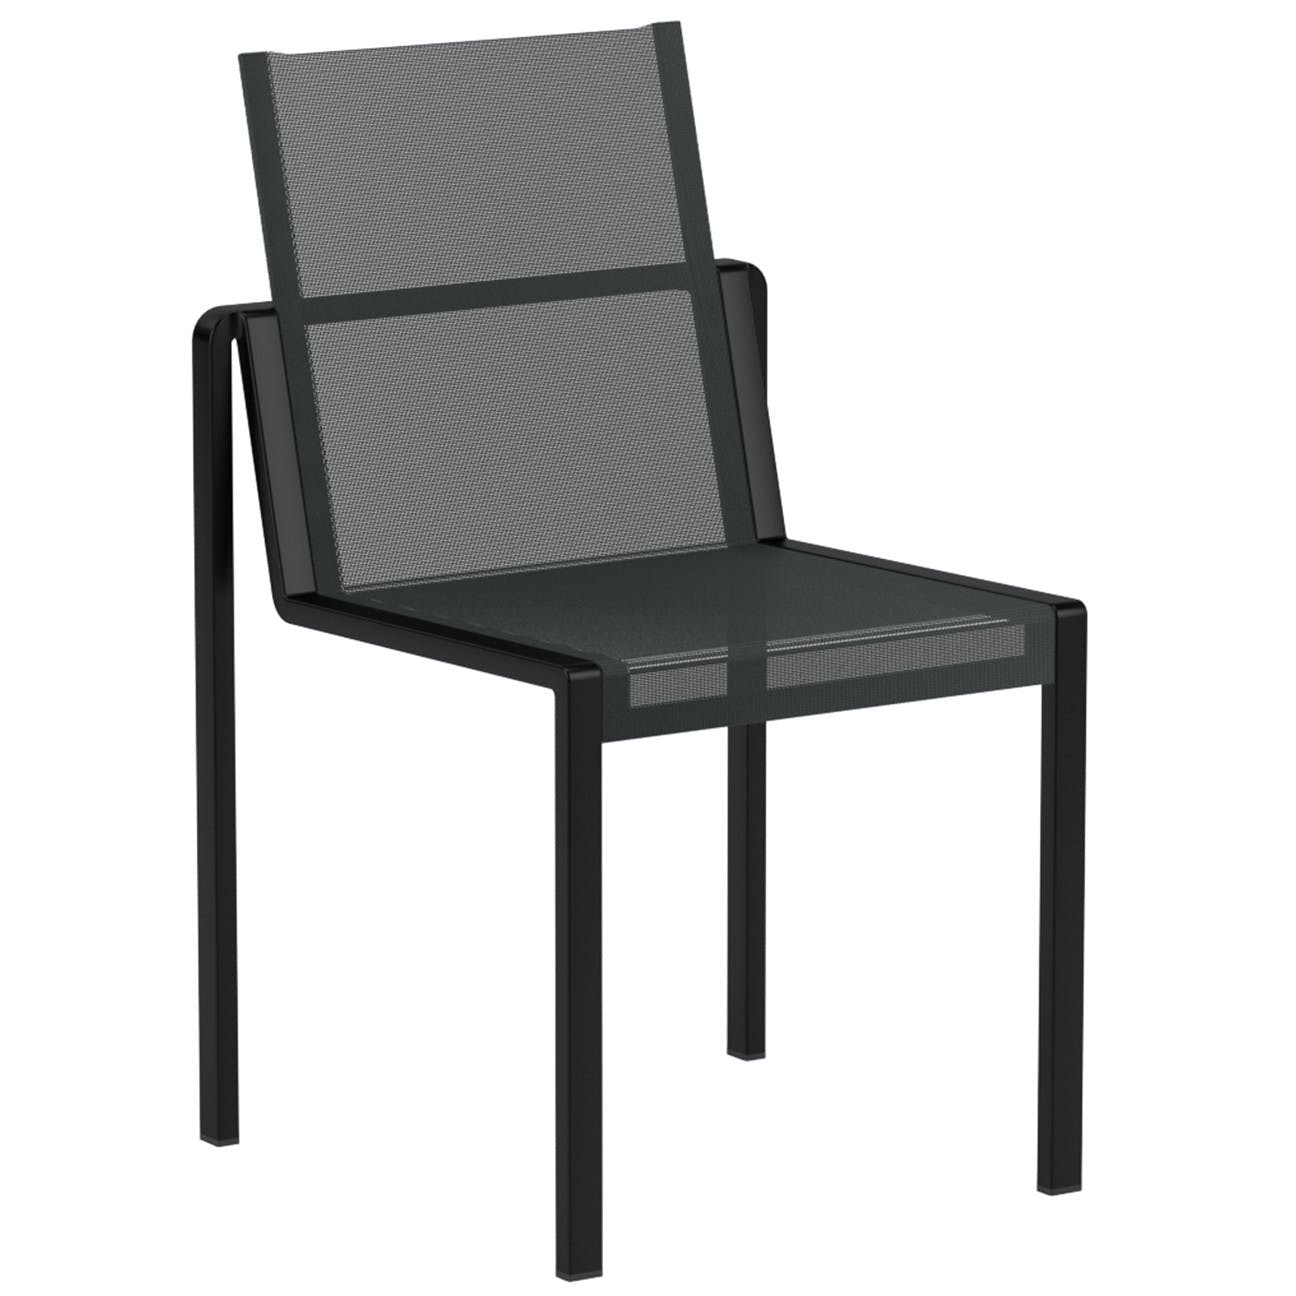 Royal Botania Alura Chair Black Haute Living